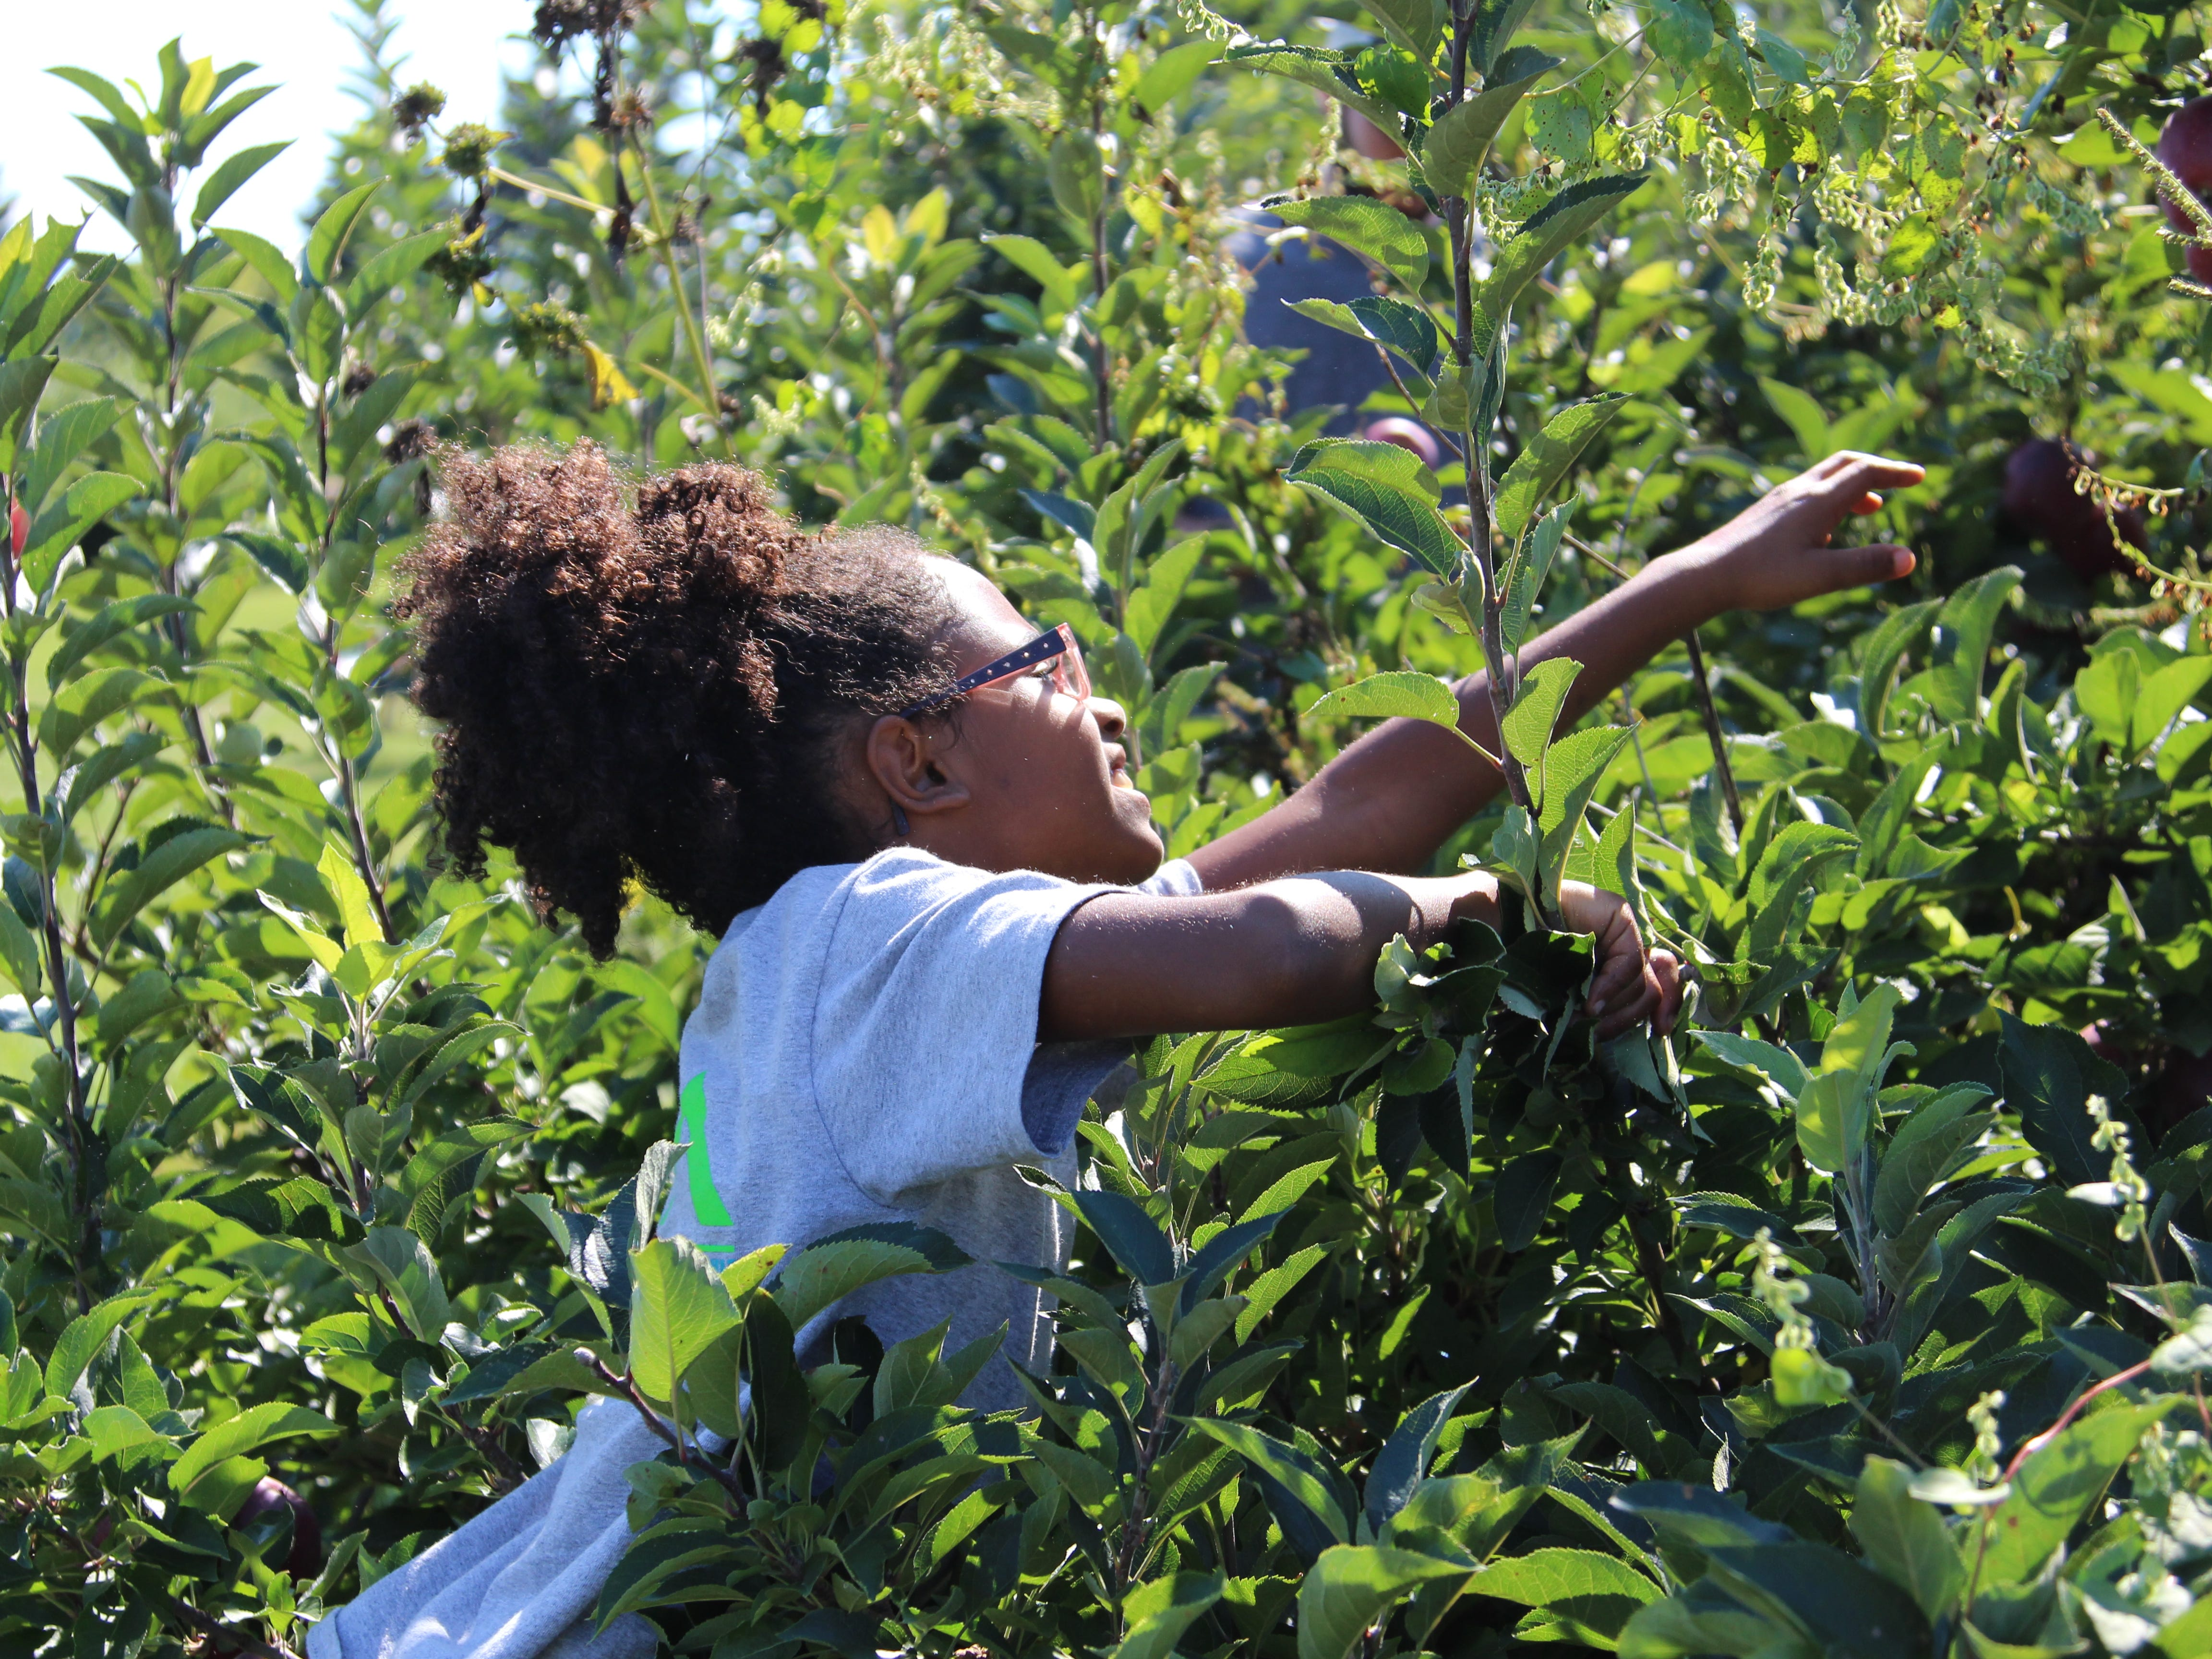 Sarina Strother, 8, reaches for an apple at Applefest, which took place Saturday at Lawrence Orchards.